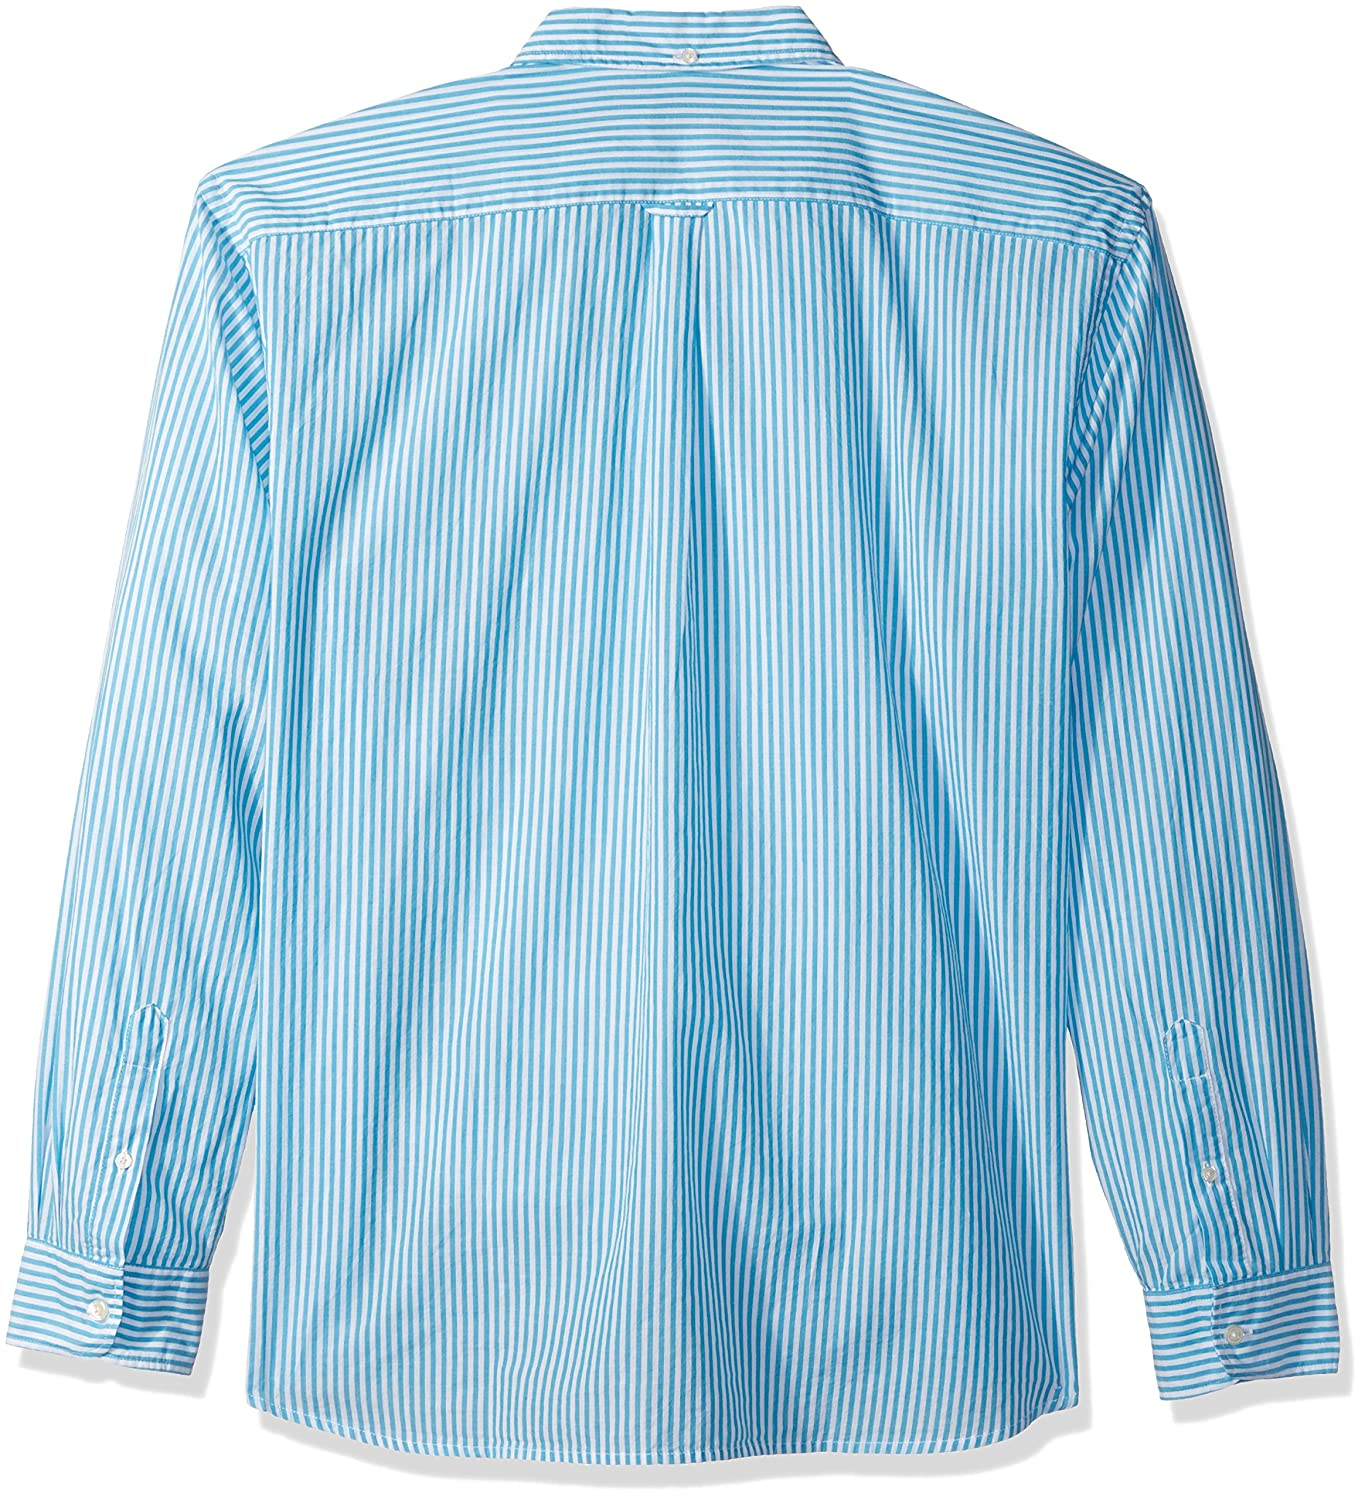 Dockers Mens Poplin Long Sleeve Button-Front Shirt